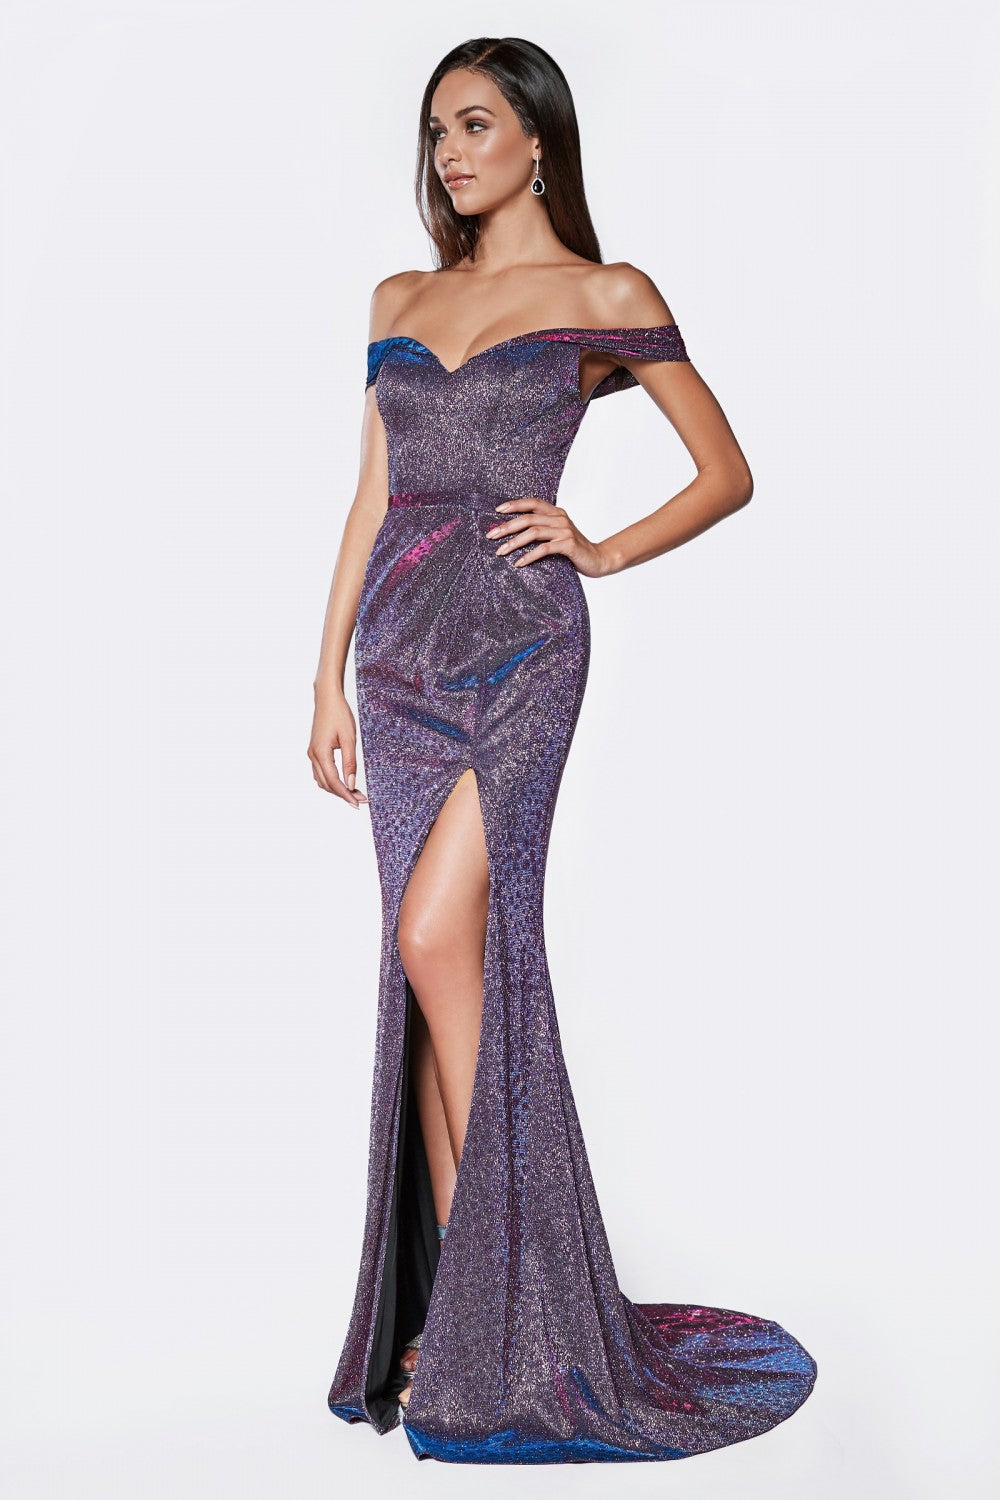 Off The Shoulder Metallic Fitted Gown With Sweetheart Neckline And Leg Slit